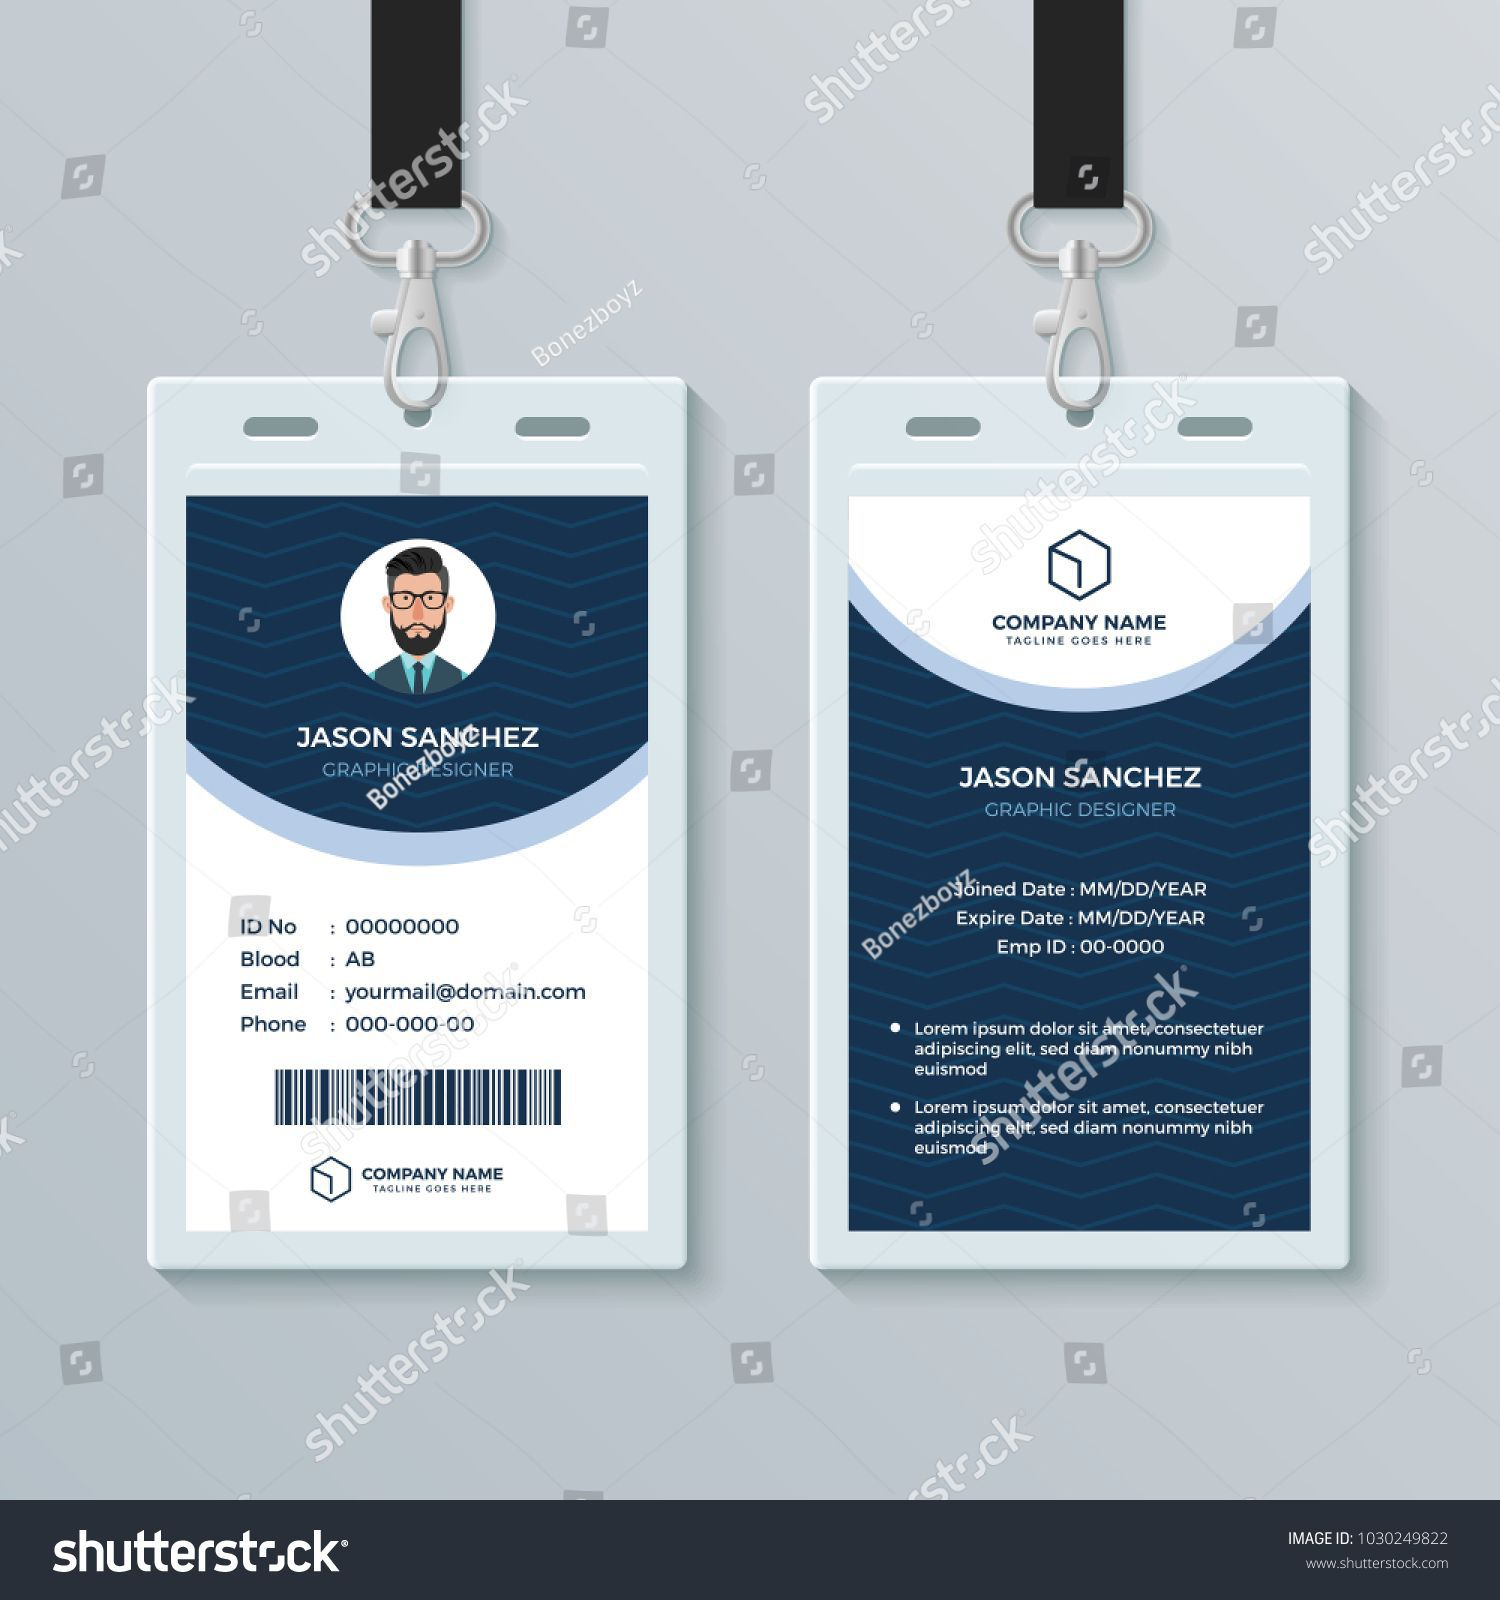 009 Imposing Employee Id Card Template High Definition  Free Download Psd WordFull